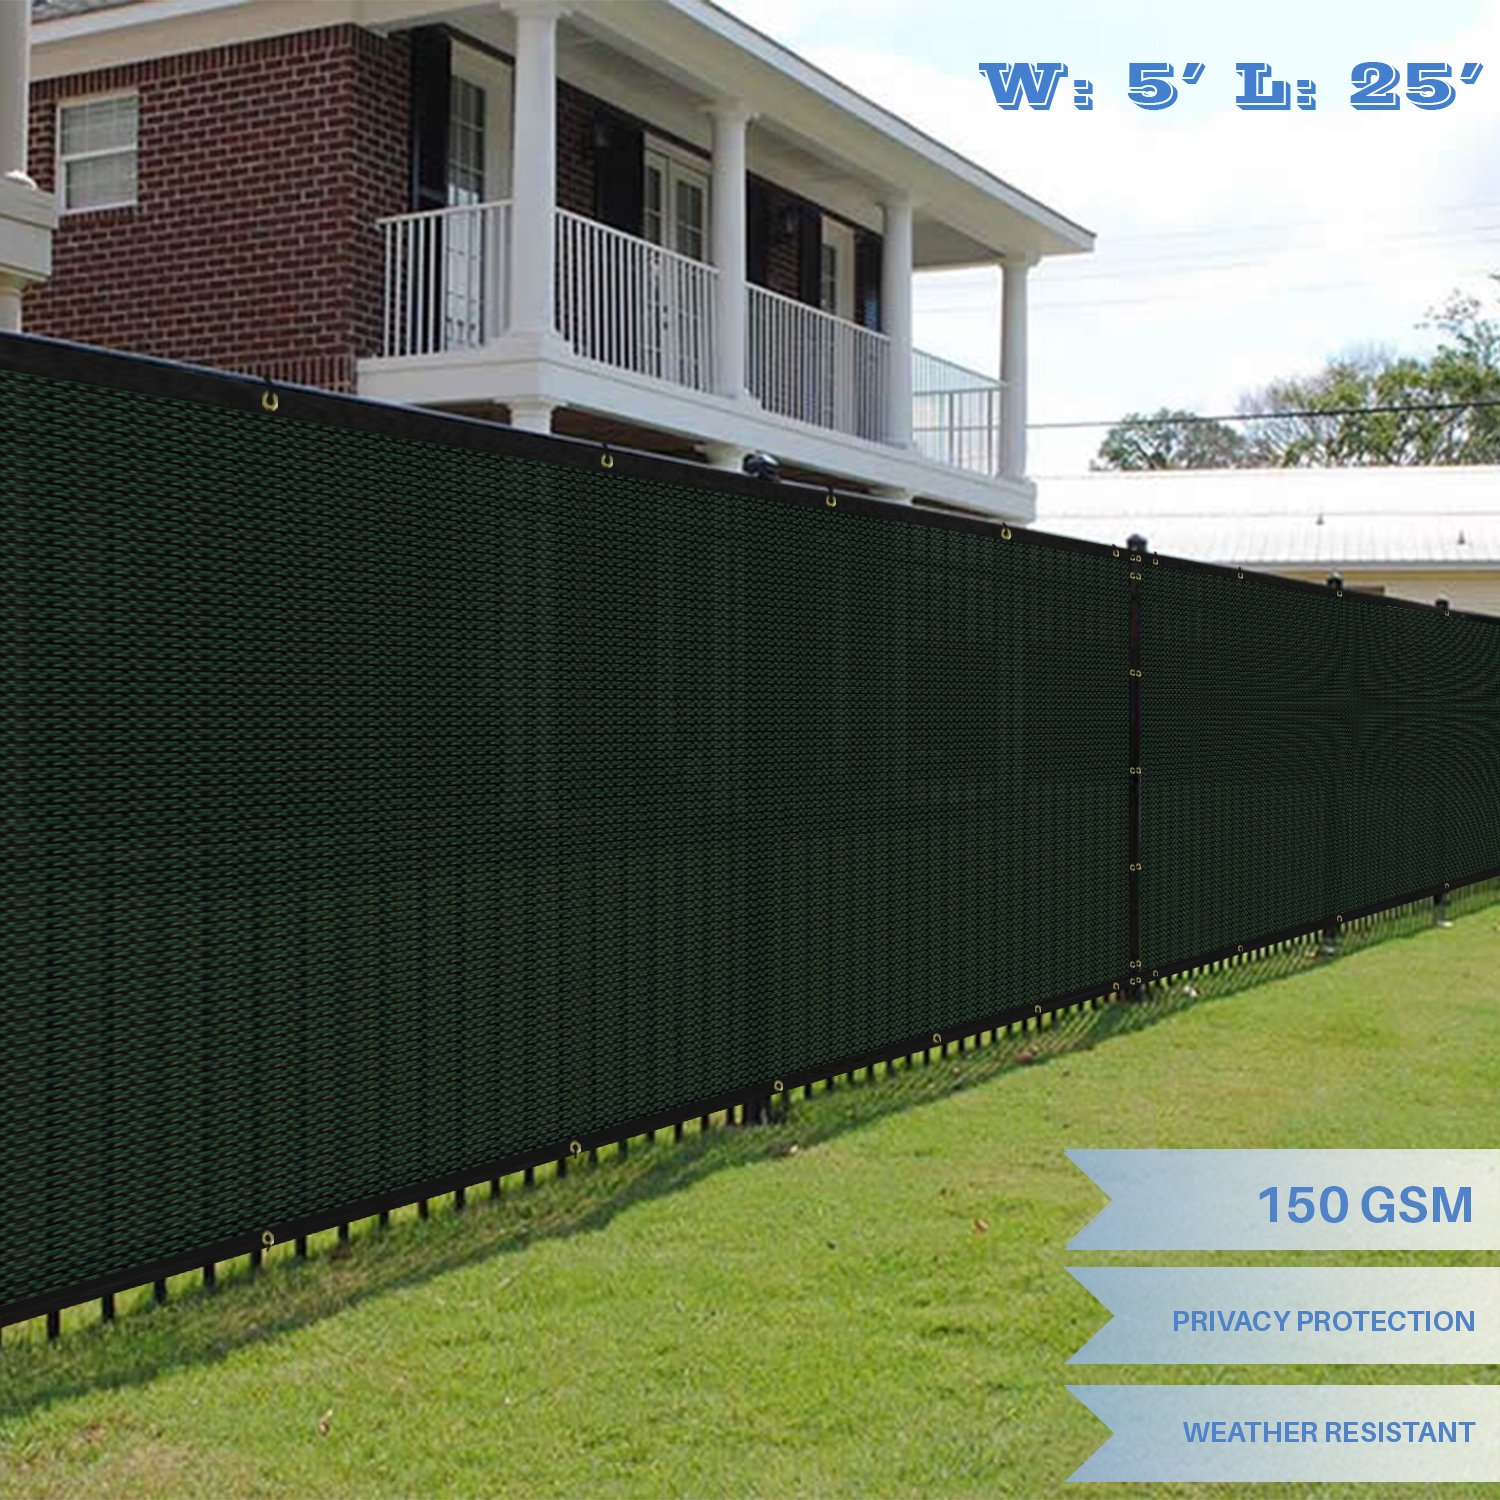 E K Sunrise 5 x 25 Green Fence Privacy Screen, Commercial Outdoor Backyard Shade Windscreen Mesh Fabric 3 Years Warranty Customized Set of 1